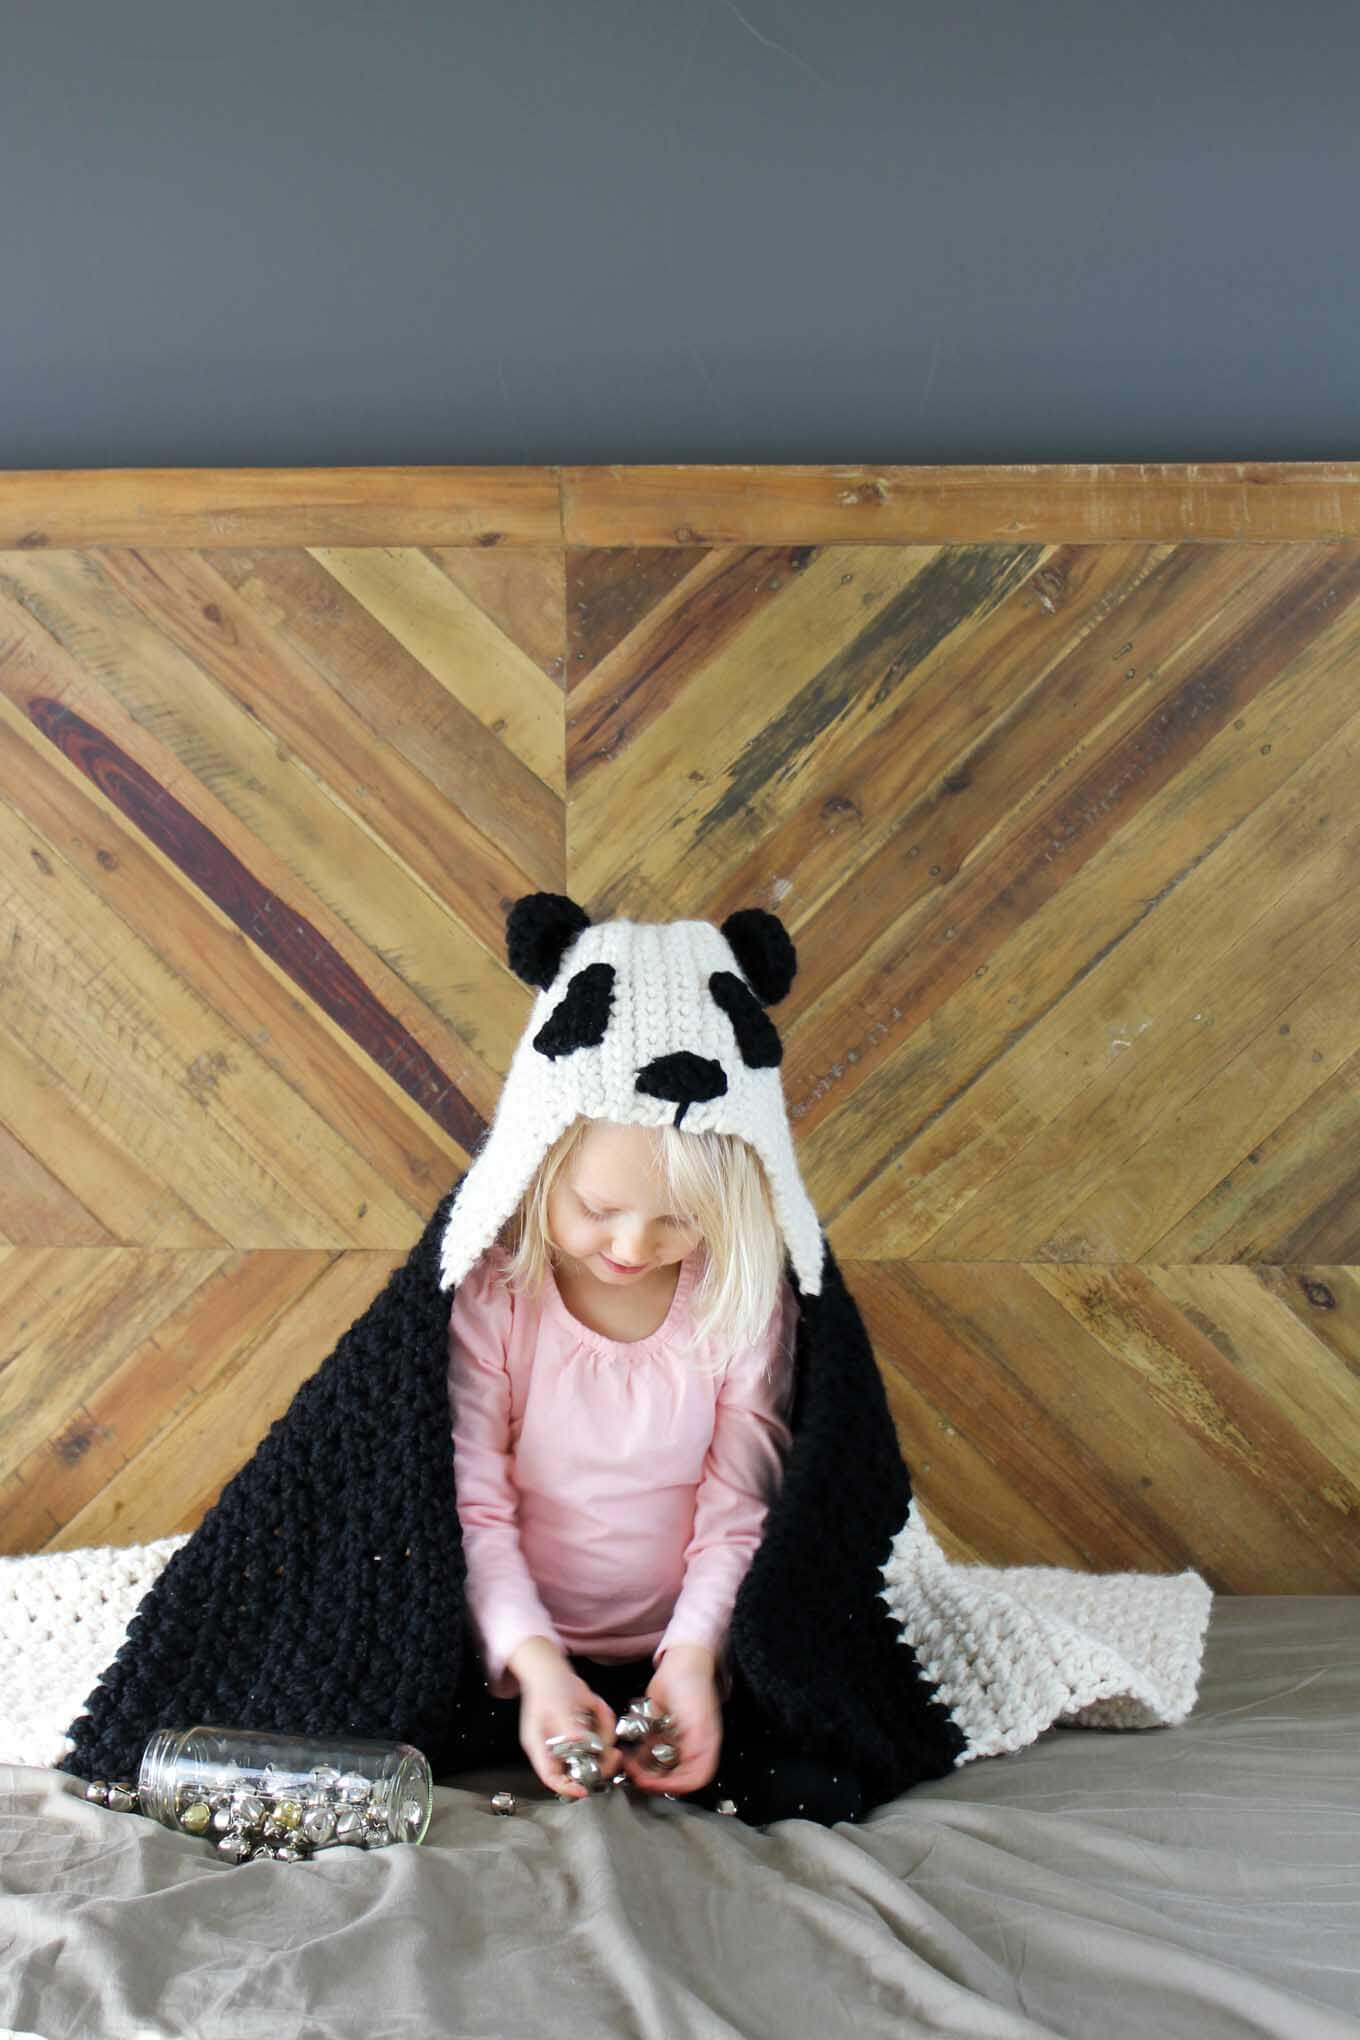 "This free crochet hooded baby afghan pattern will give your favorite child the chance to feel like a cozy little panda. Make one for the new baby to grow into and another for an older sibling to enjoy right away! Customize the pattern to make a crochet koala or polar bear too! Made with Lion Brand Wool Ease Thick & Quick in ""Fisherman"" and ""Black."" Click for the free crochet pattern!"